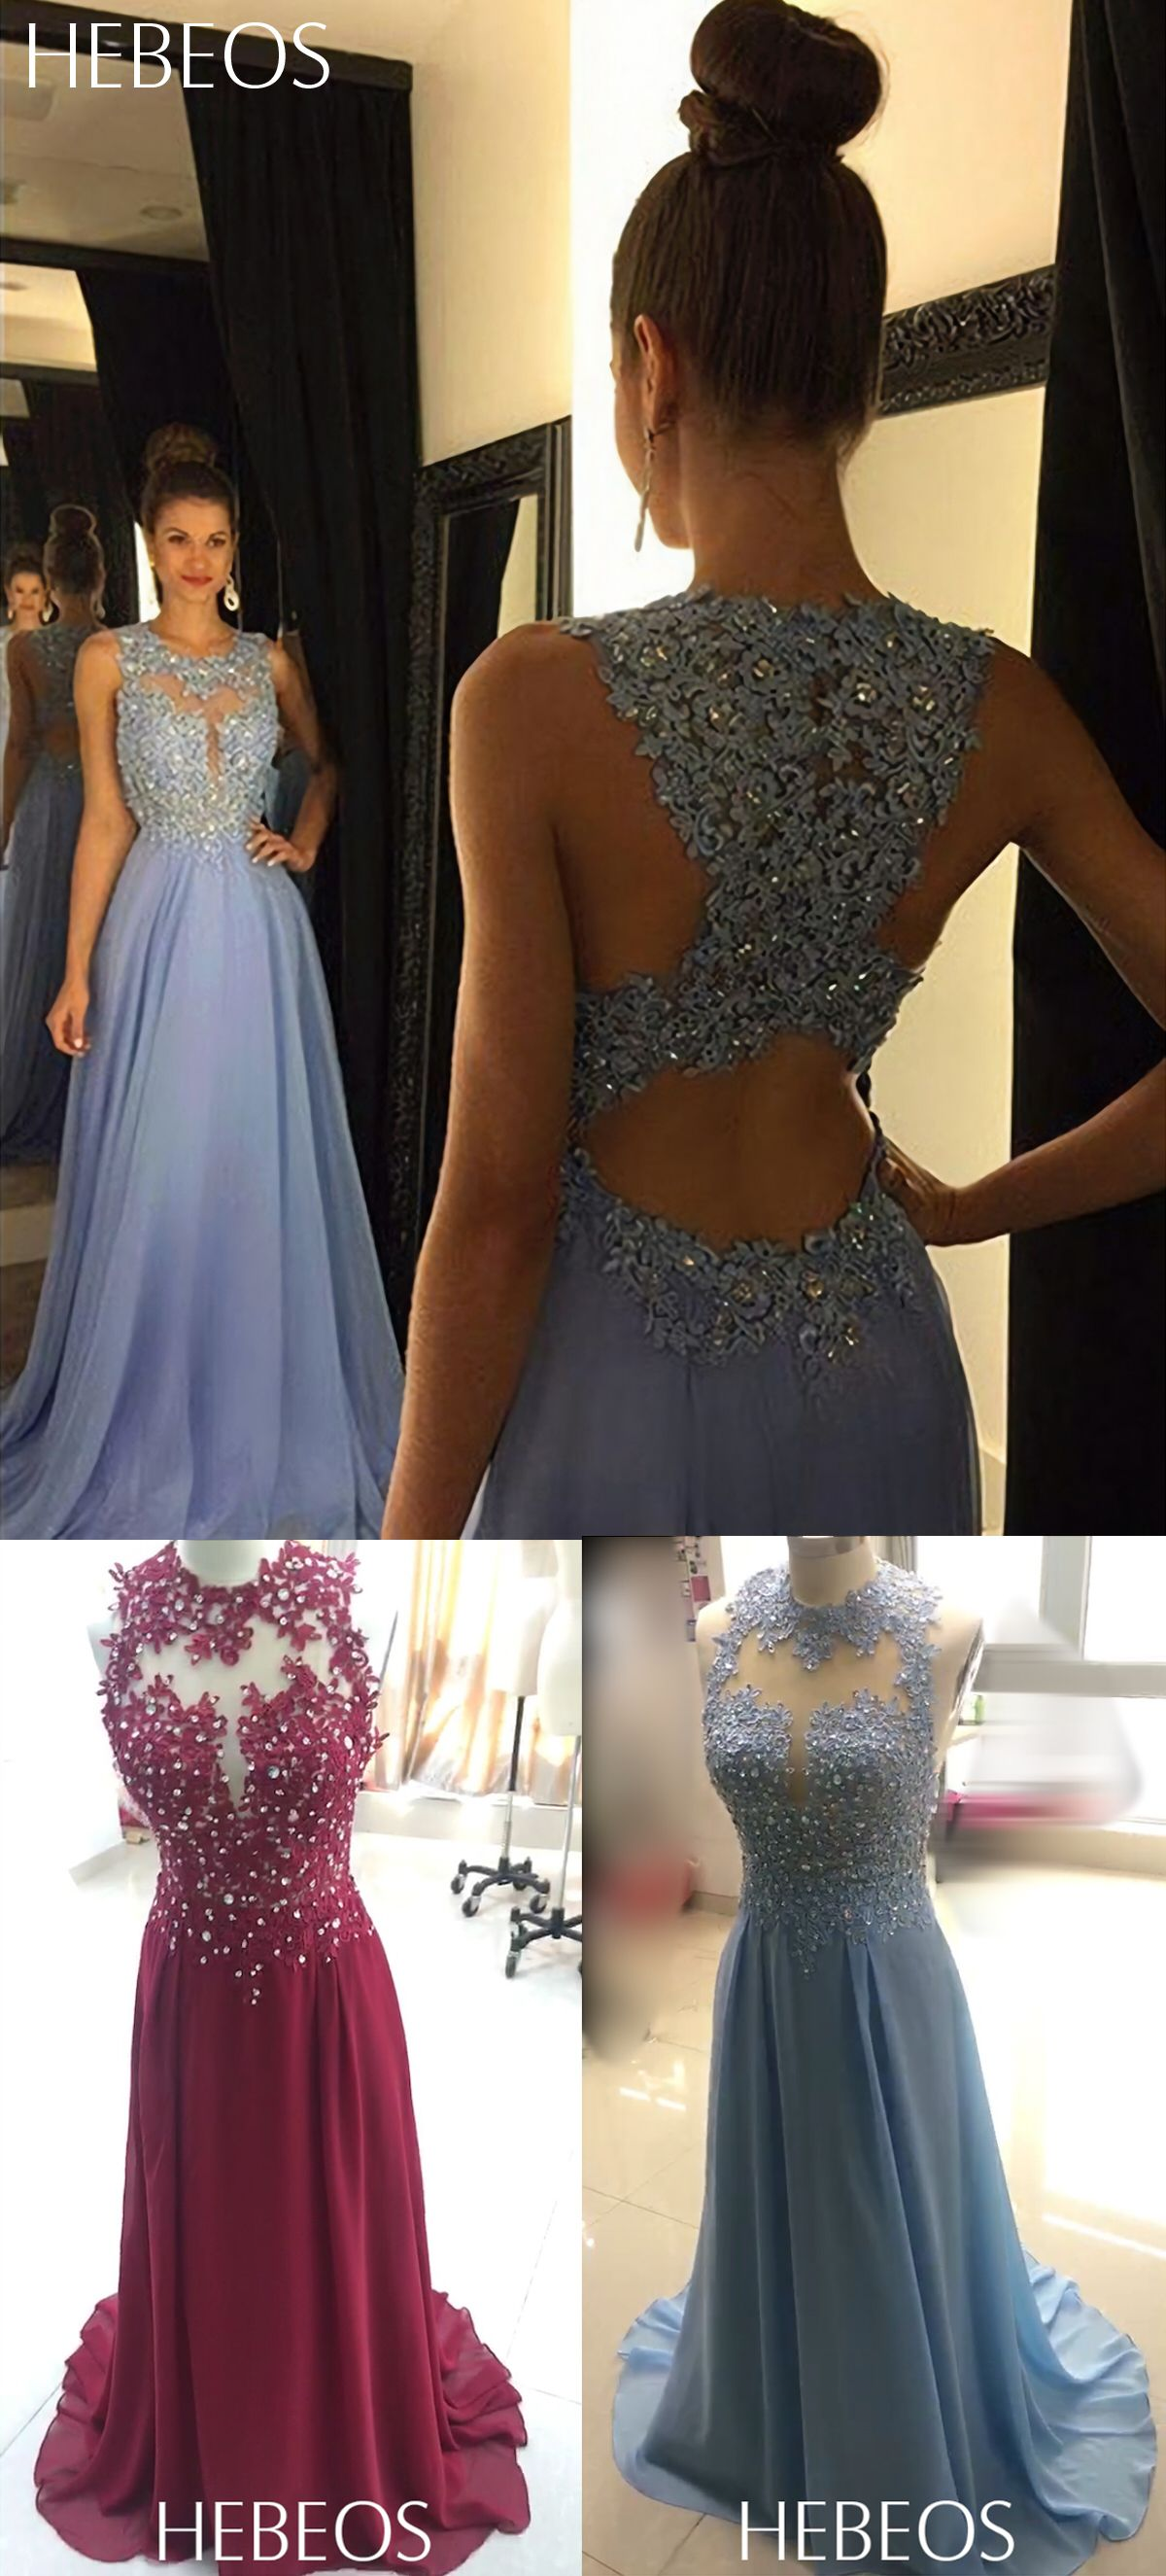 f18475e3c59 HEBEOS A-Line Scoop Chiffon Light Sky Blue Long Prom Dresses 2018. All  sizes and colors available.